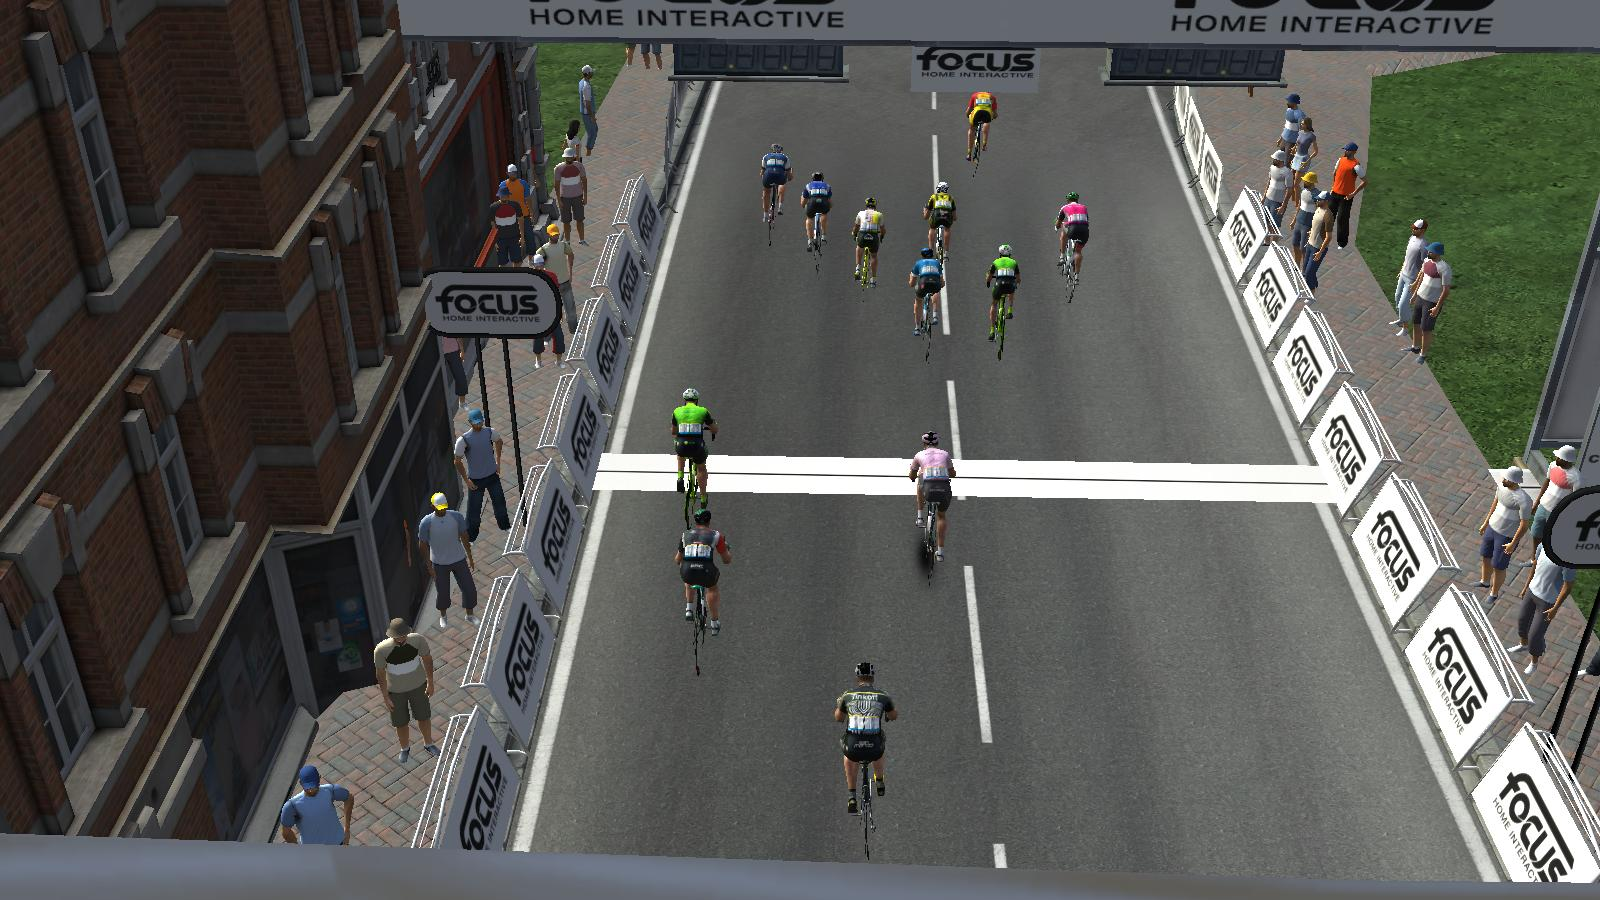 pcmdaily.com/images/mg/2019/Races/PTHC/Rheden/47.jpg